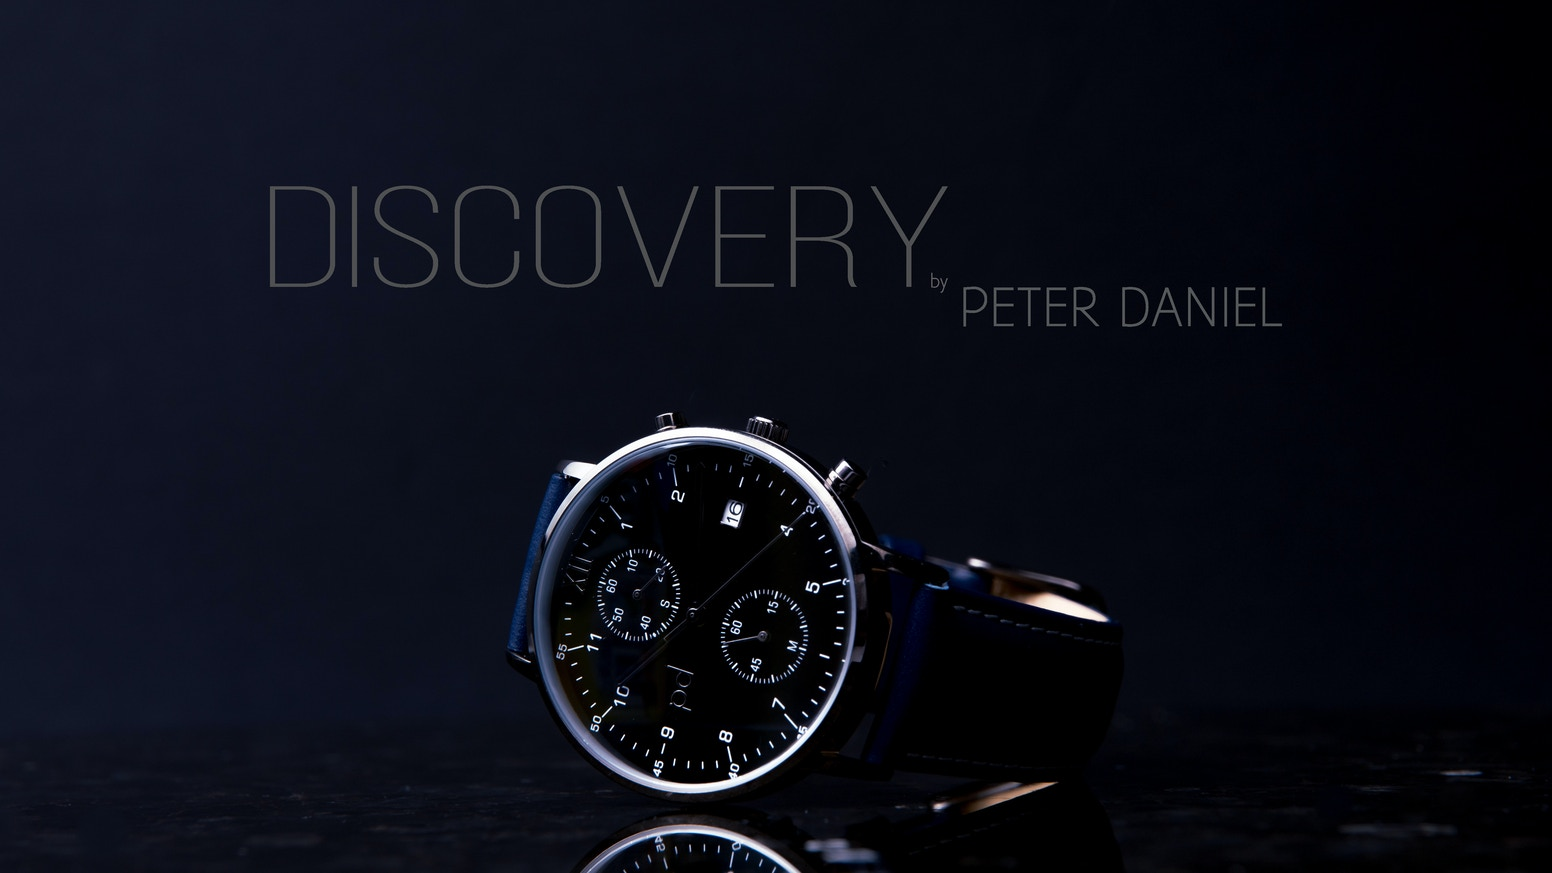 Second stage of Peter Daniel's journey with the latest time keeper and statement piece: Discovery Watches. Click the link below to pre-order!